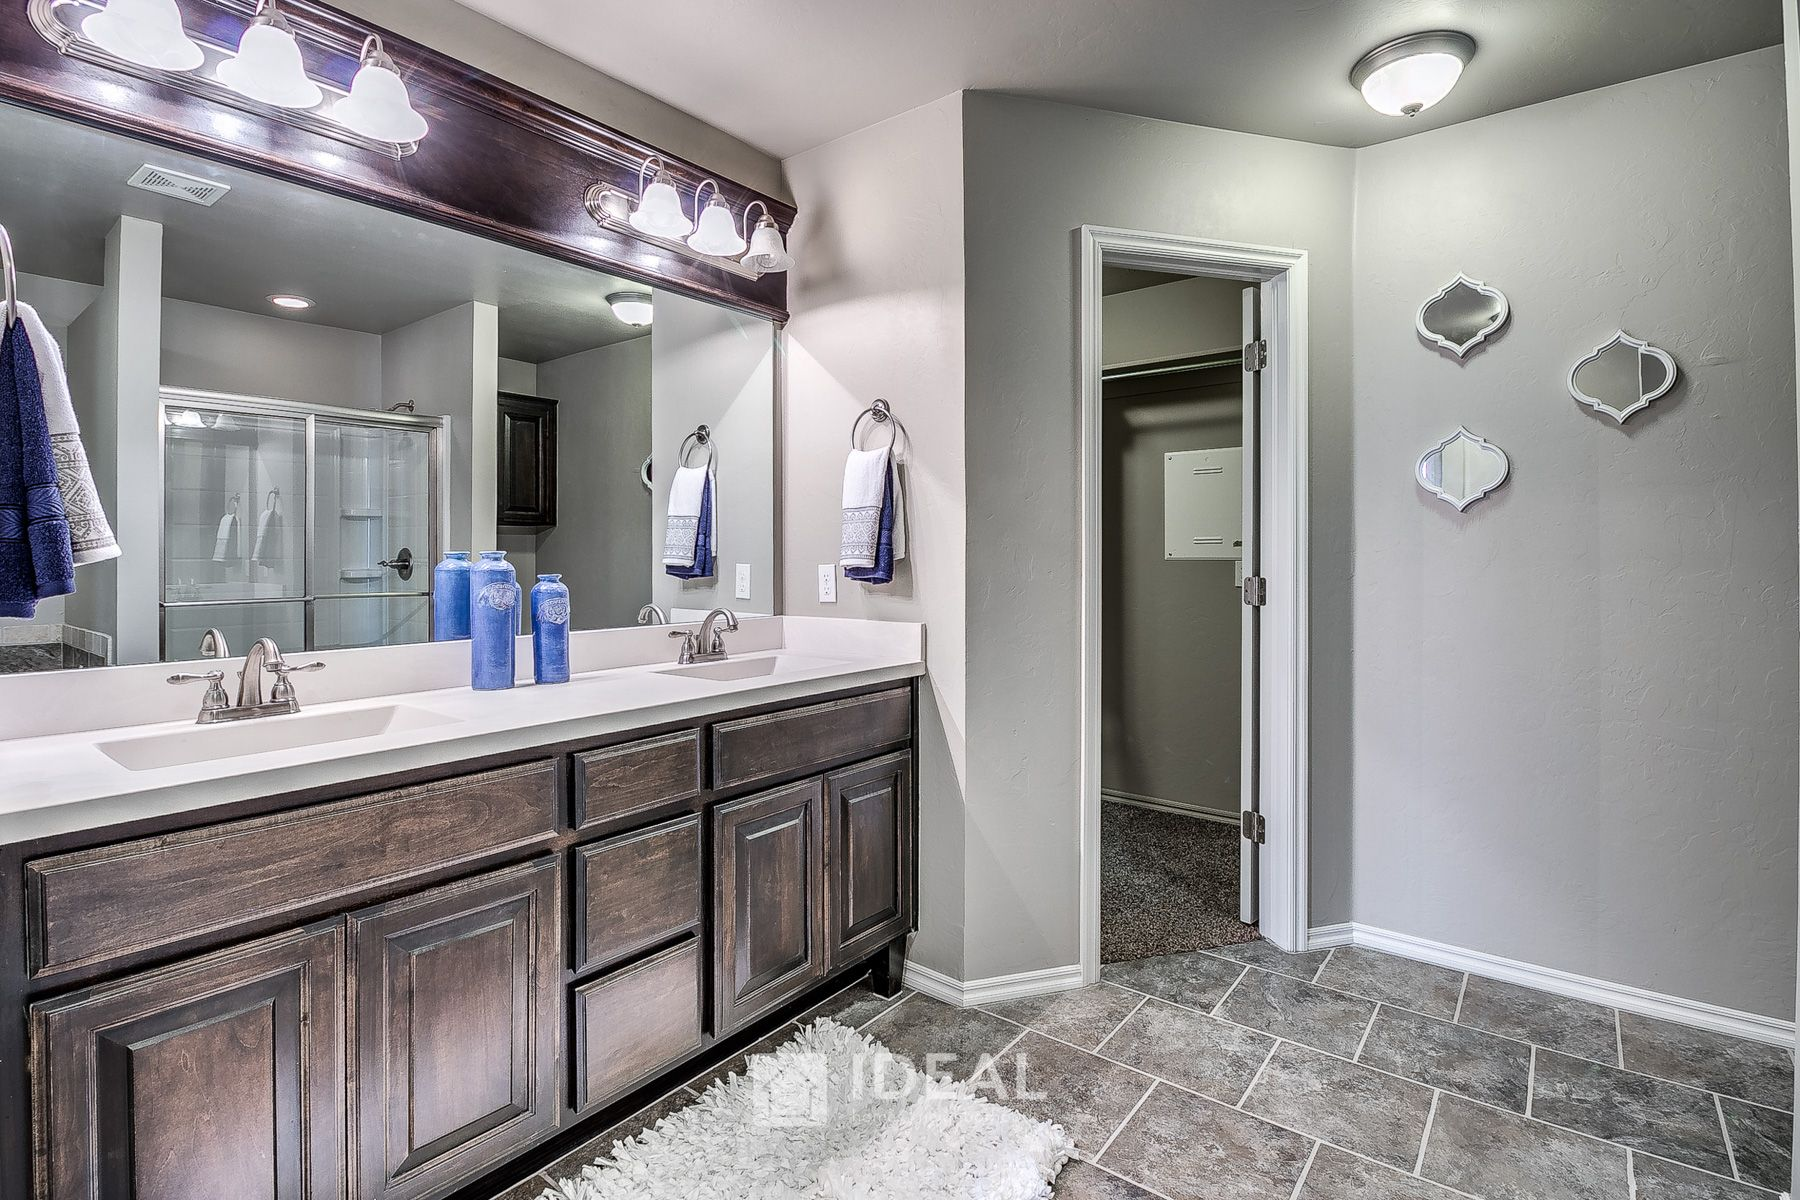 Bathroom featured in the Kensington By Ideal Homes in Oklahoma City, OK